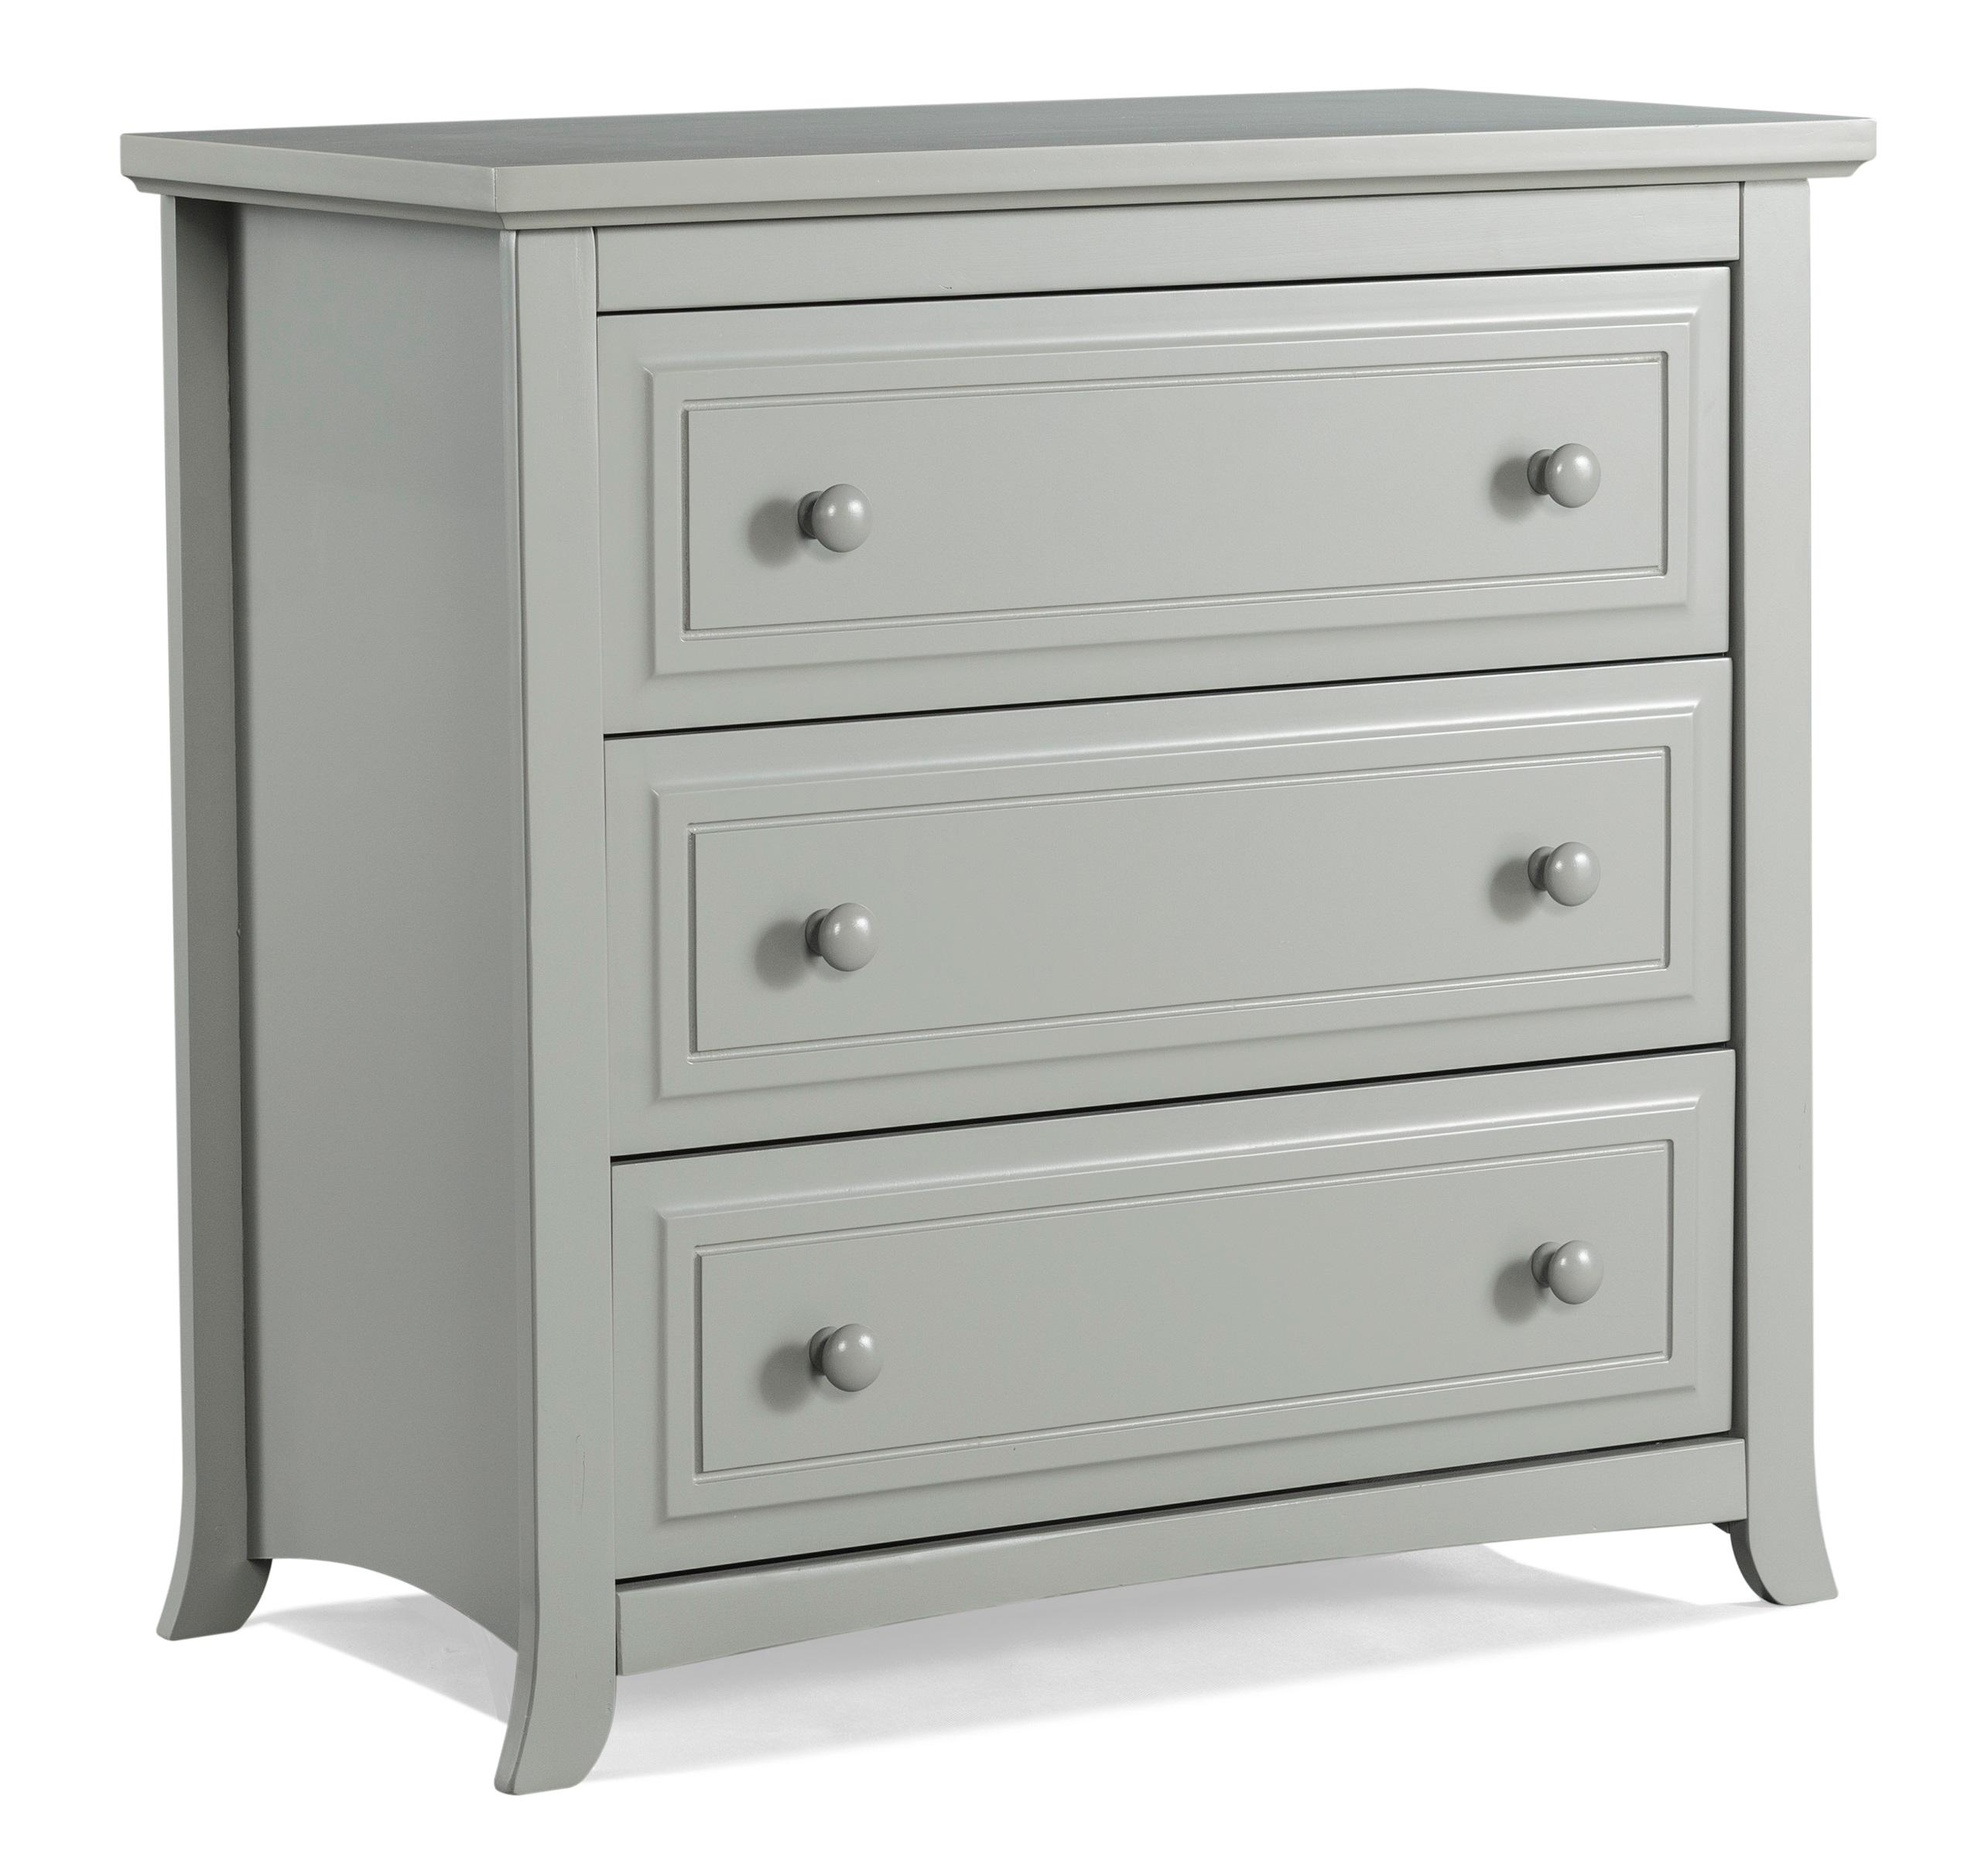 Amazon Com Graco Kendall 3 Drawer Chest Pebble Gray Baby